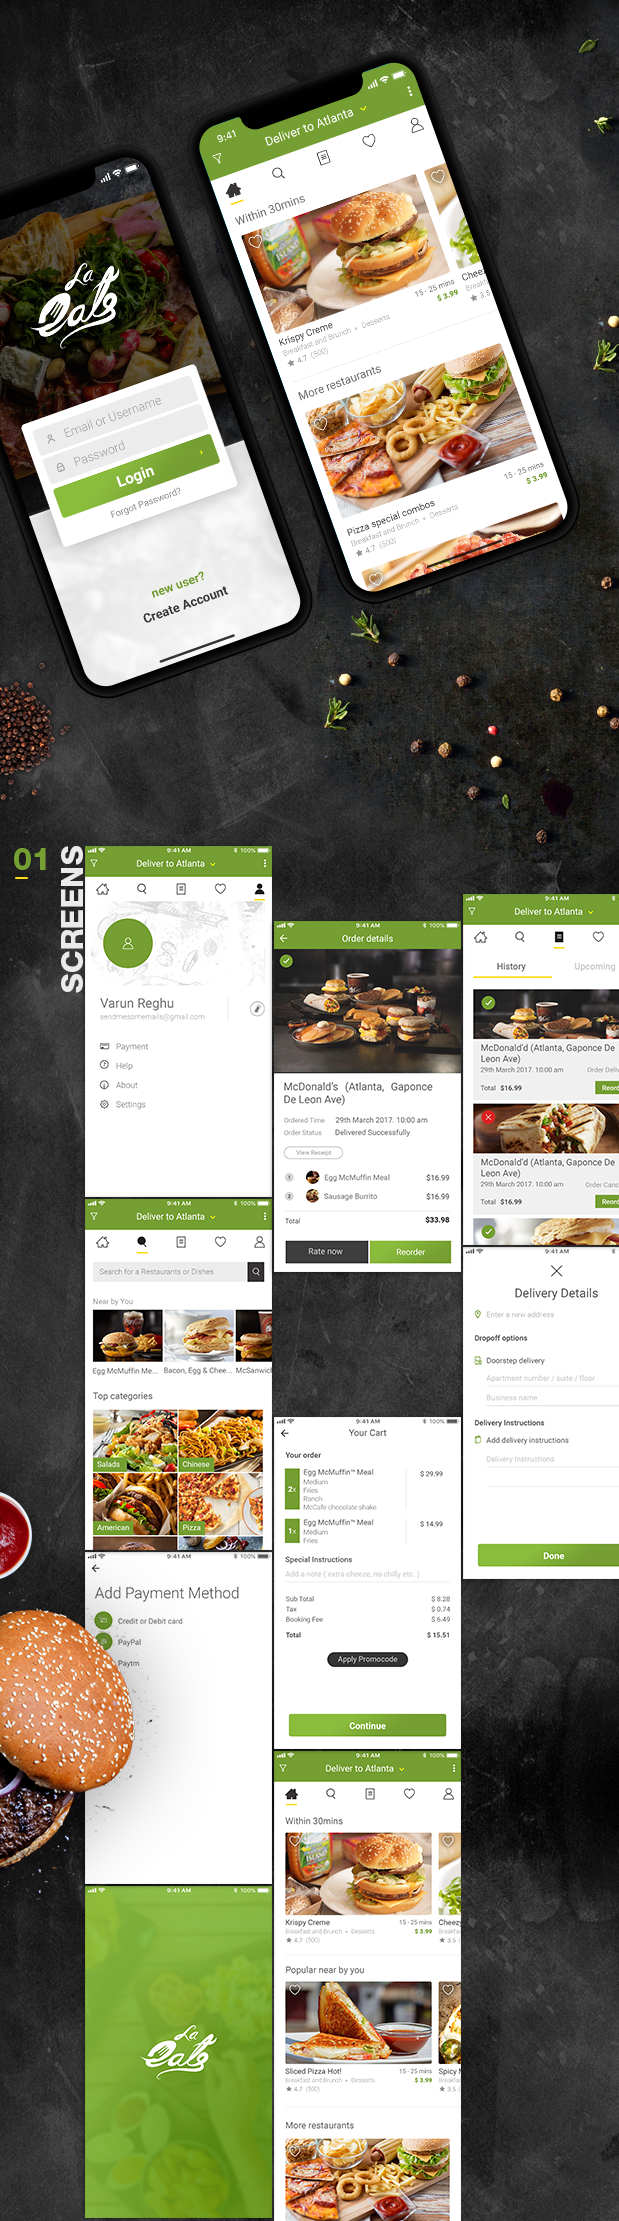 Free Codecanyon On Demand Food Delivery App Template